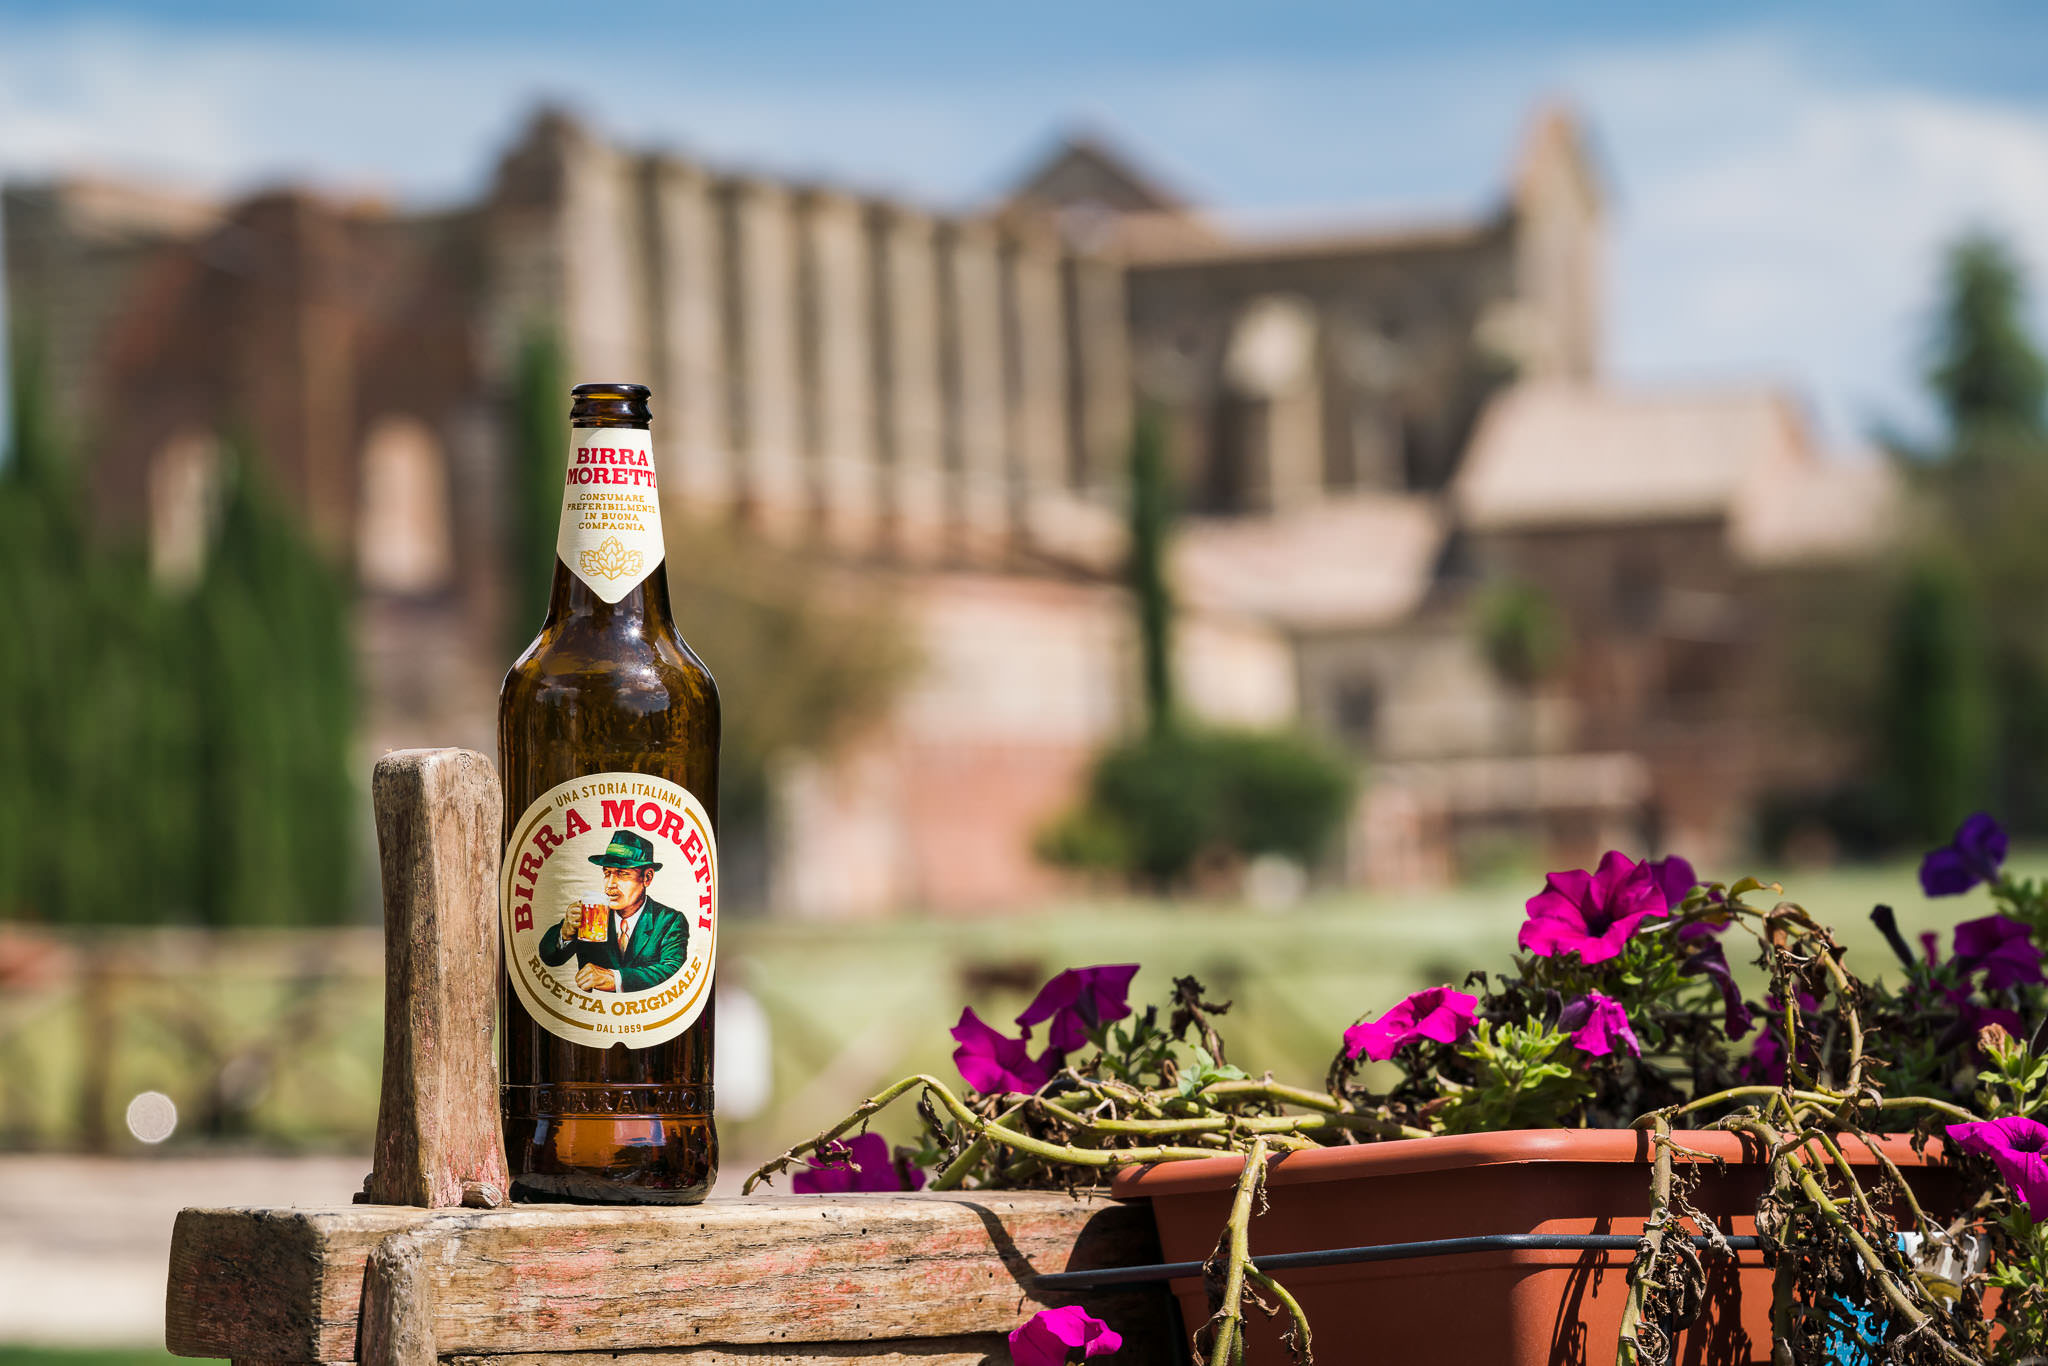 Product placement. Birra Morertti: endorsement deals are available